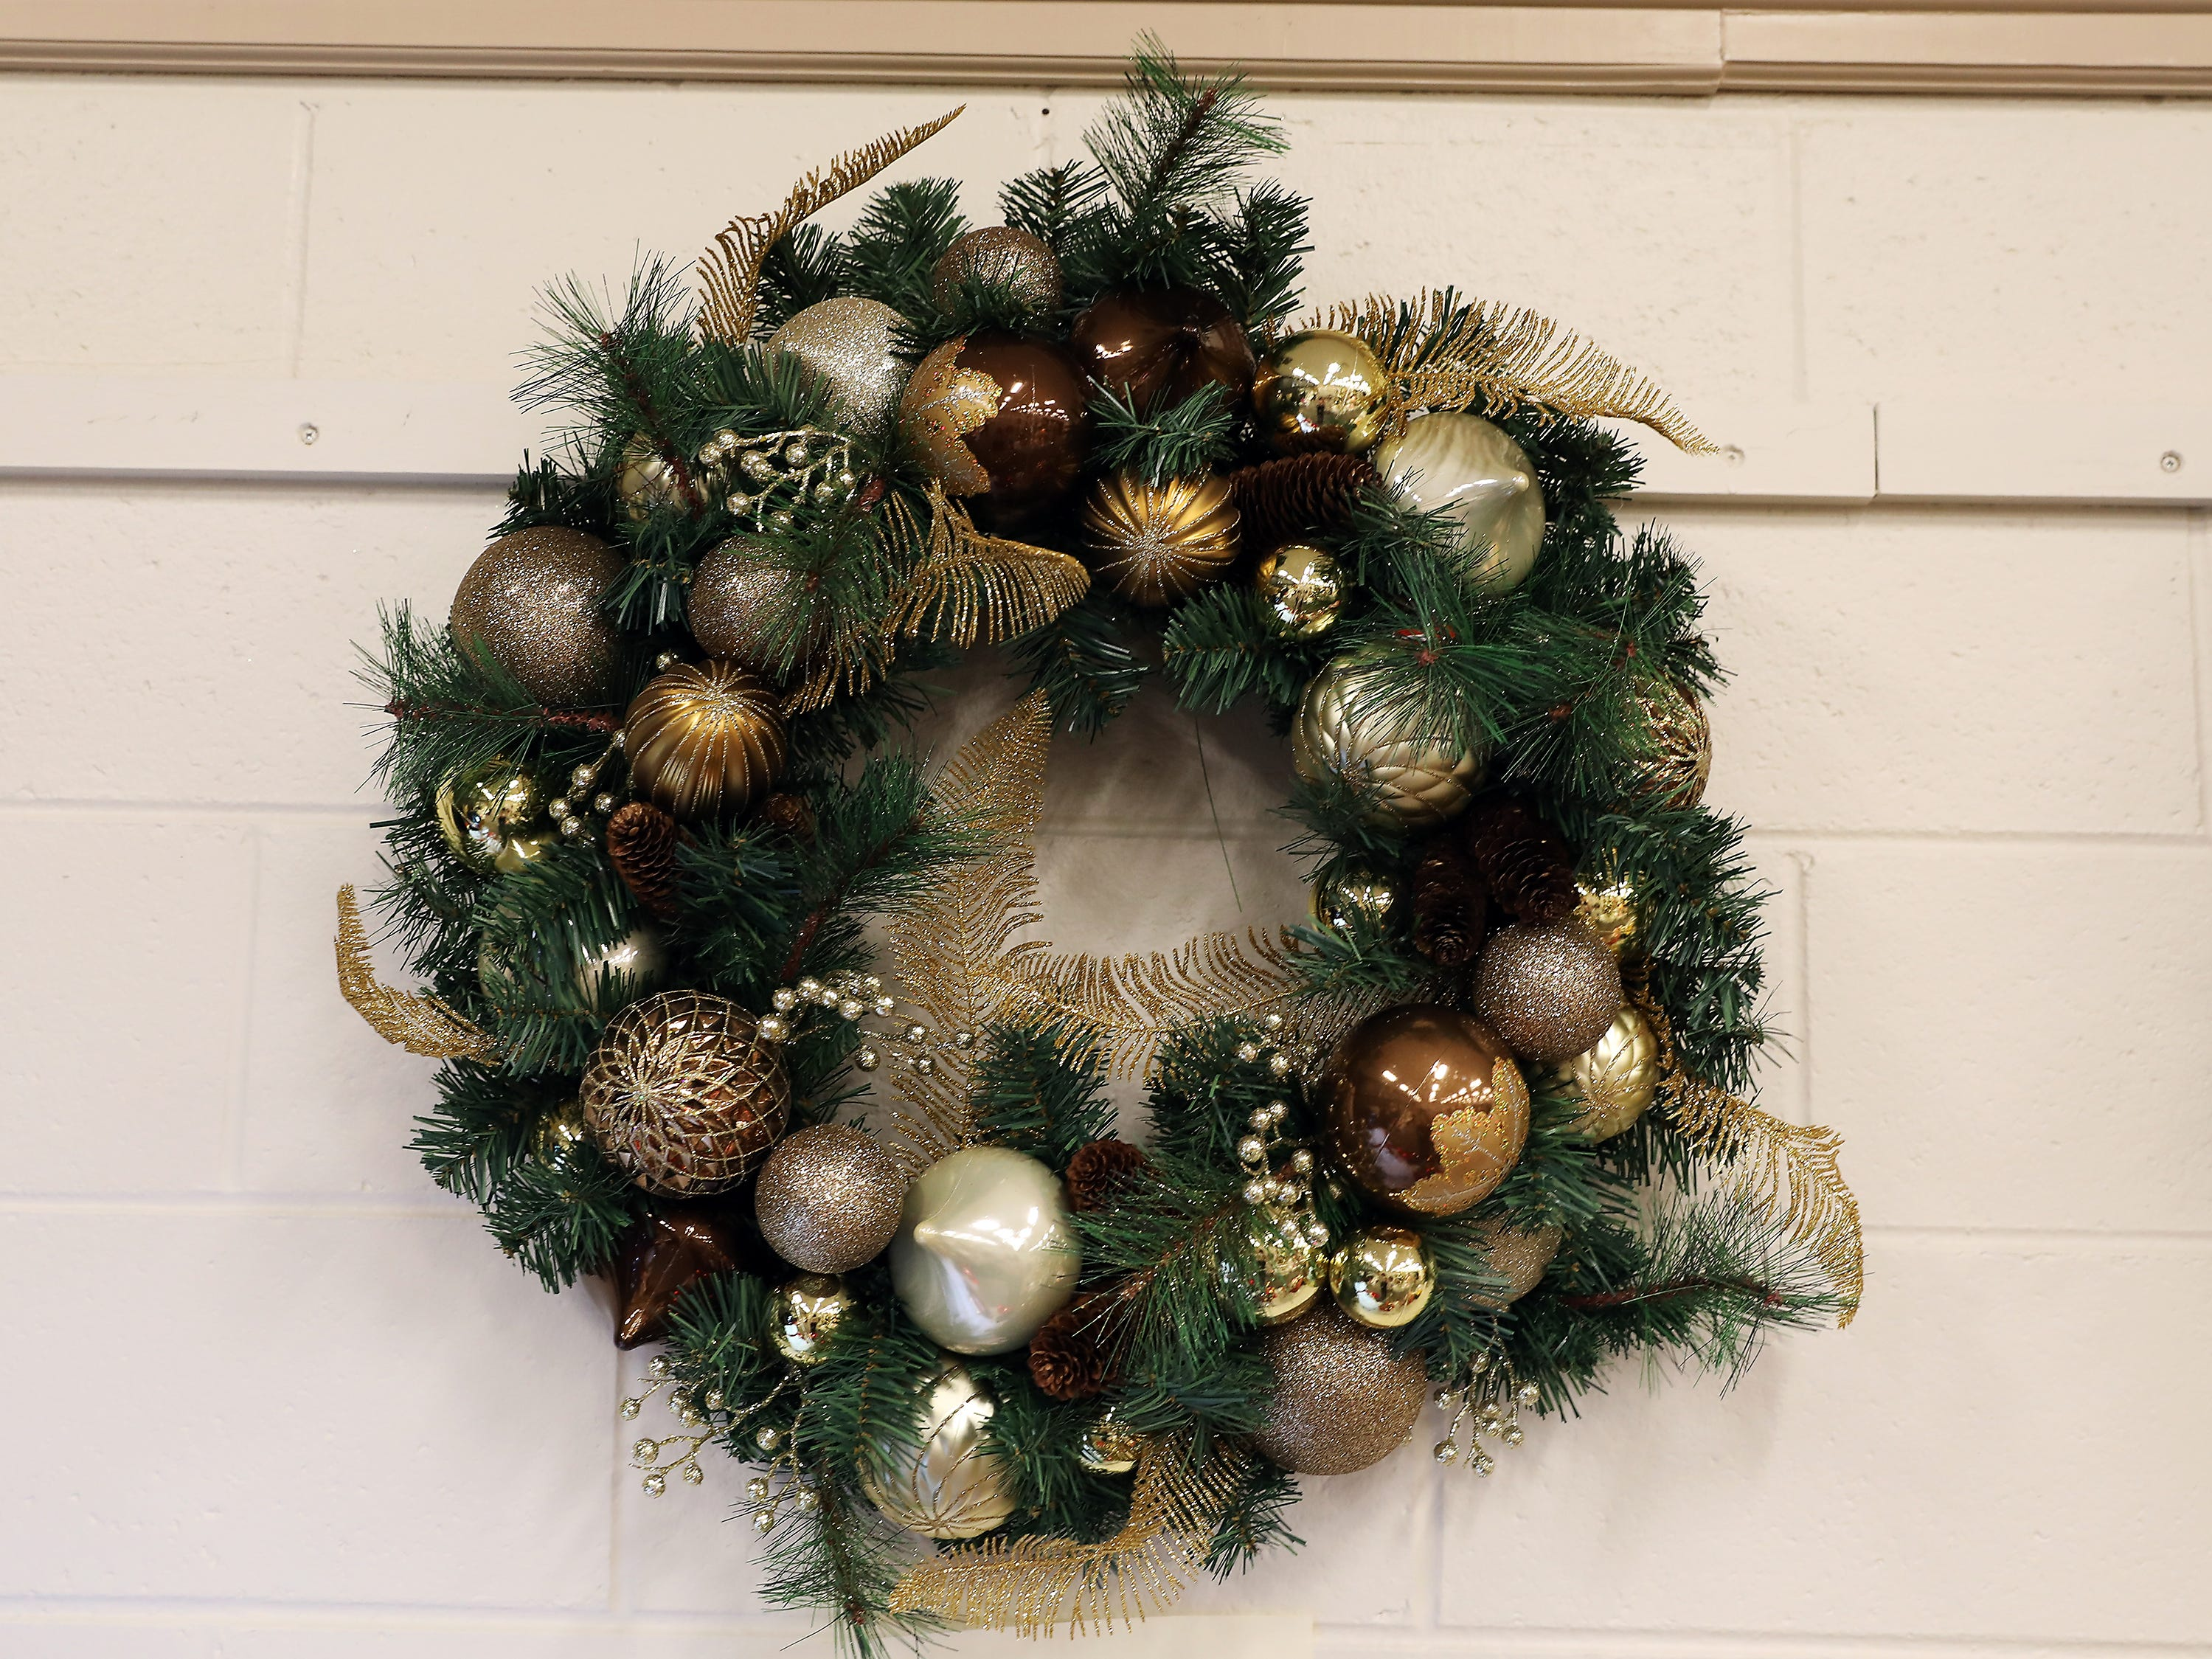 99	1:00 PM	Hospice of Central Ohio	Wreath	Christmas in Silver and Gold	A winter wreath decorated in silver and gold ornaments.		$50 gift card to your choice Adornetto's Giacomo's, Old Market House Inn.